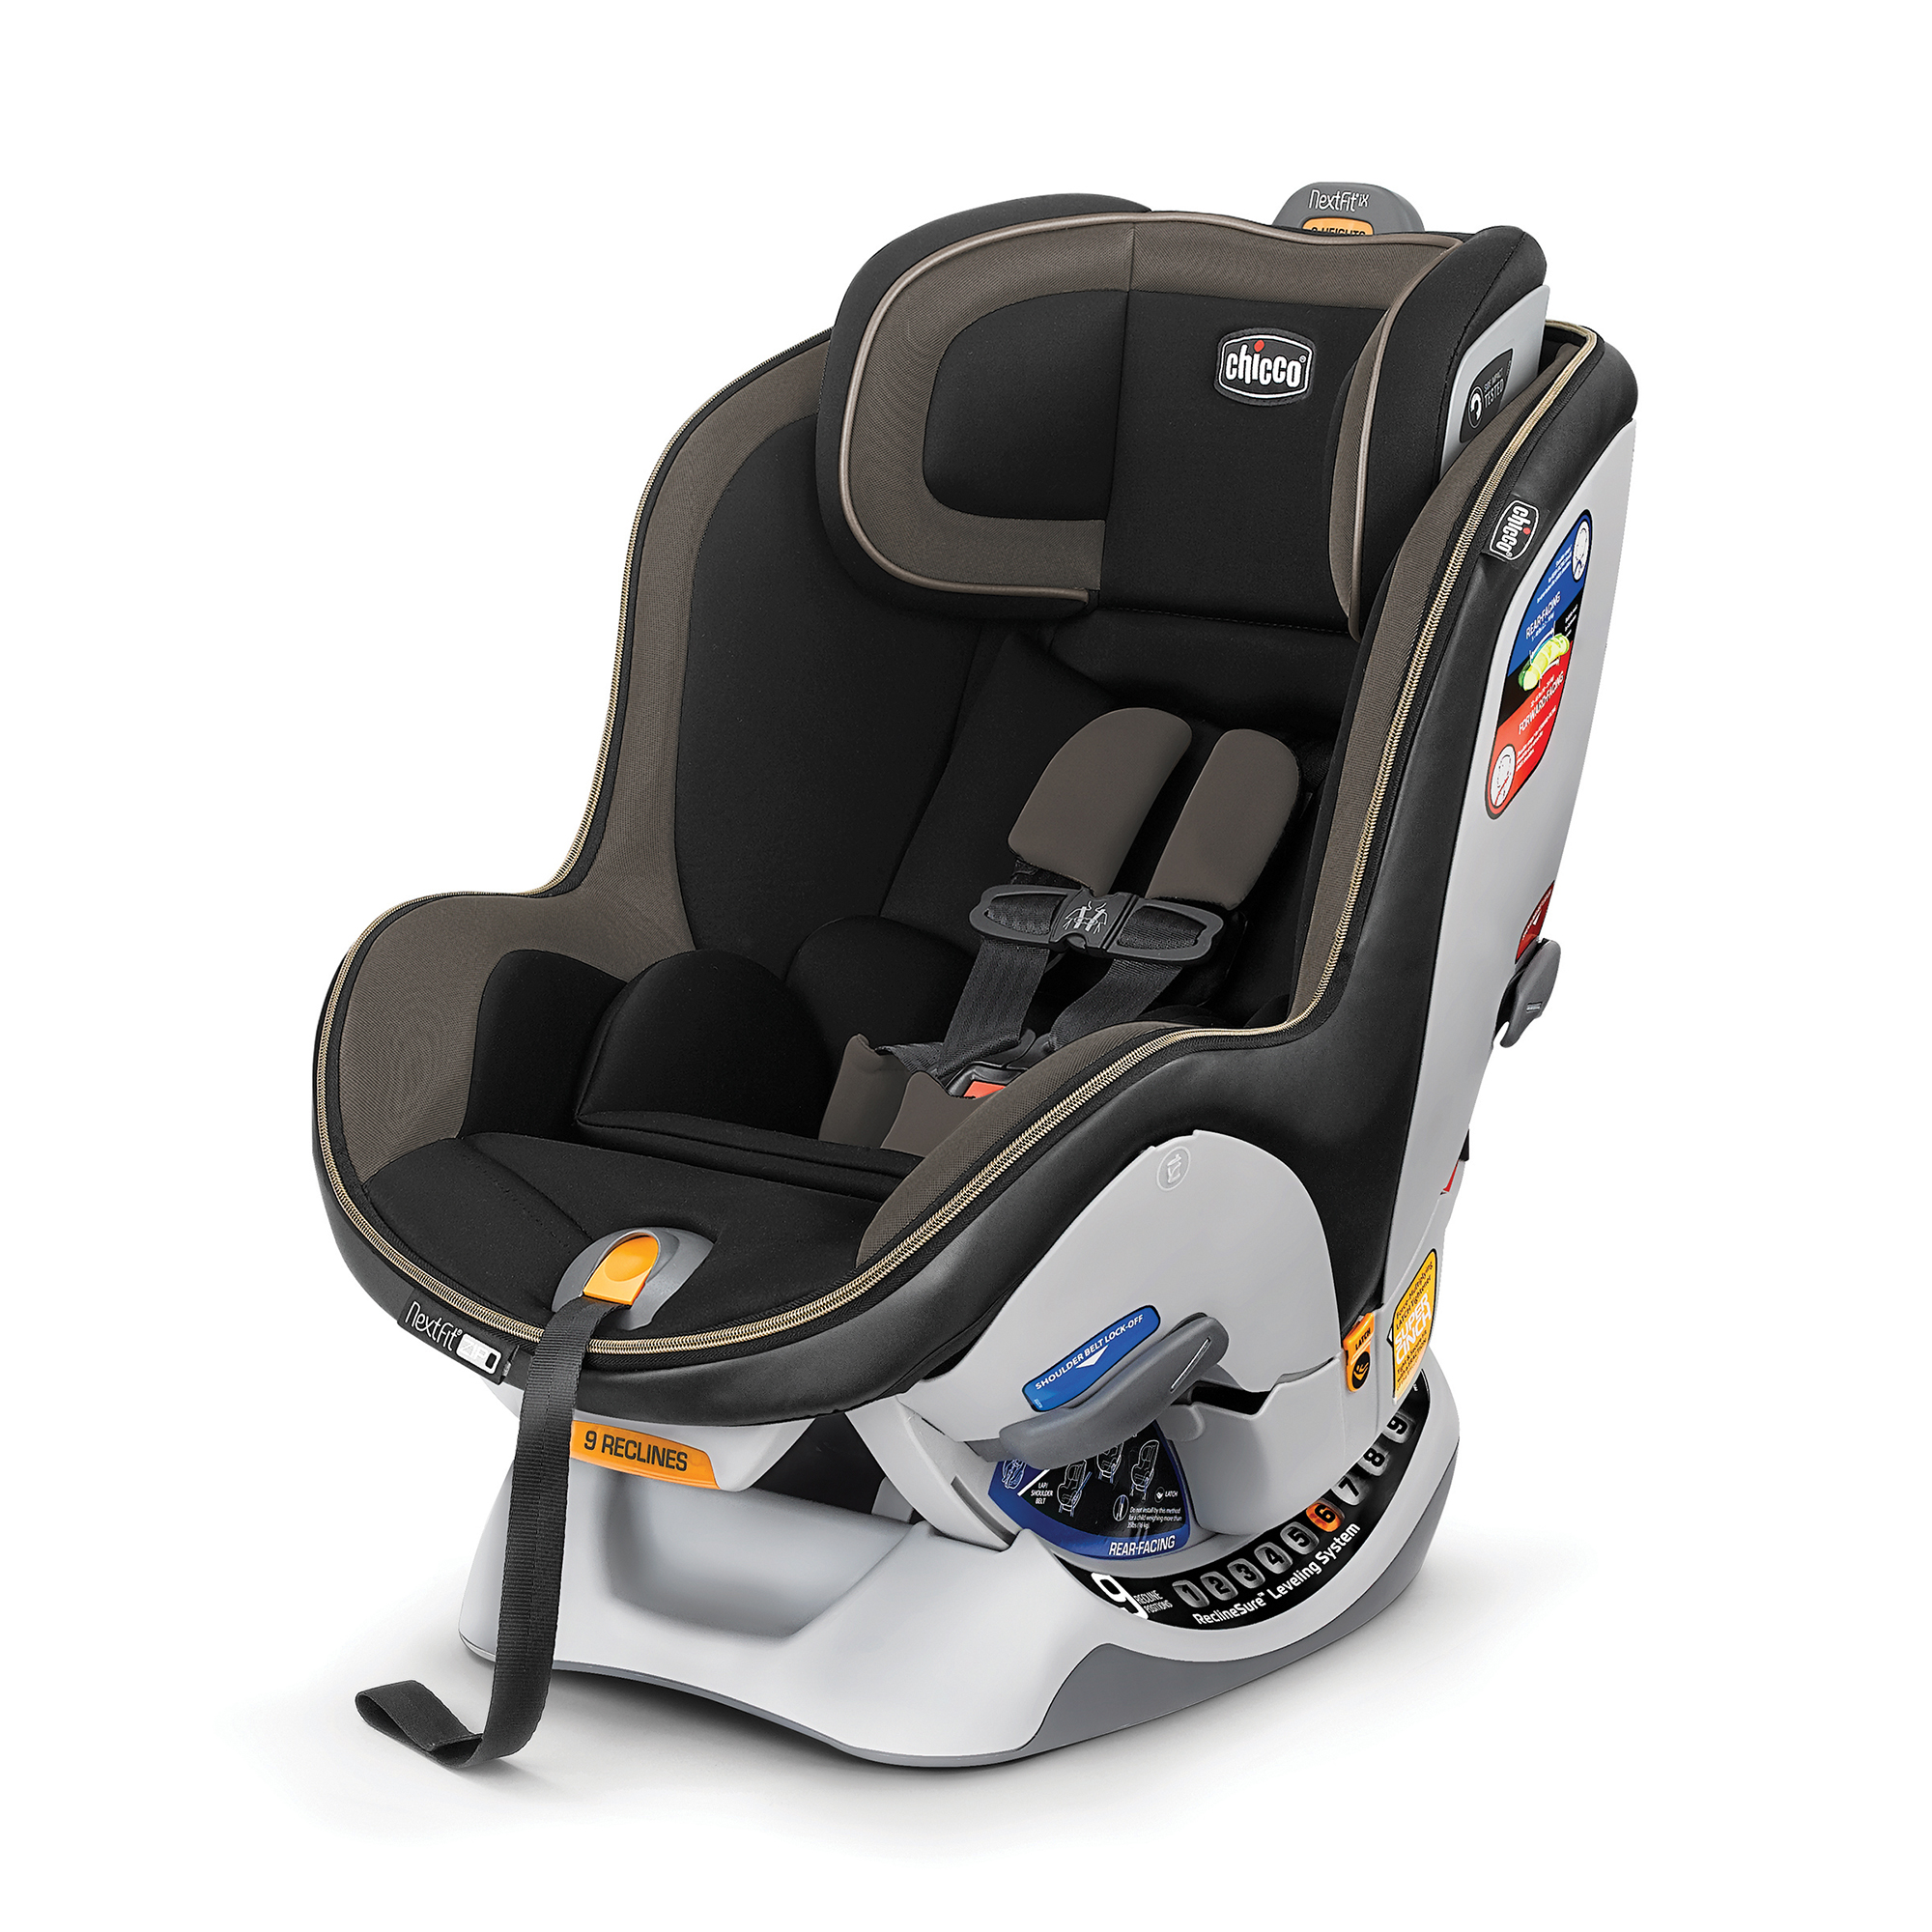 Chicco NextFit iX Zip Convertible Car Seat, Eclipse by Chicco